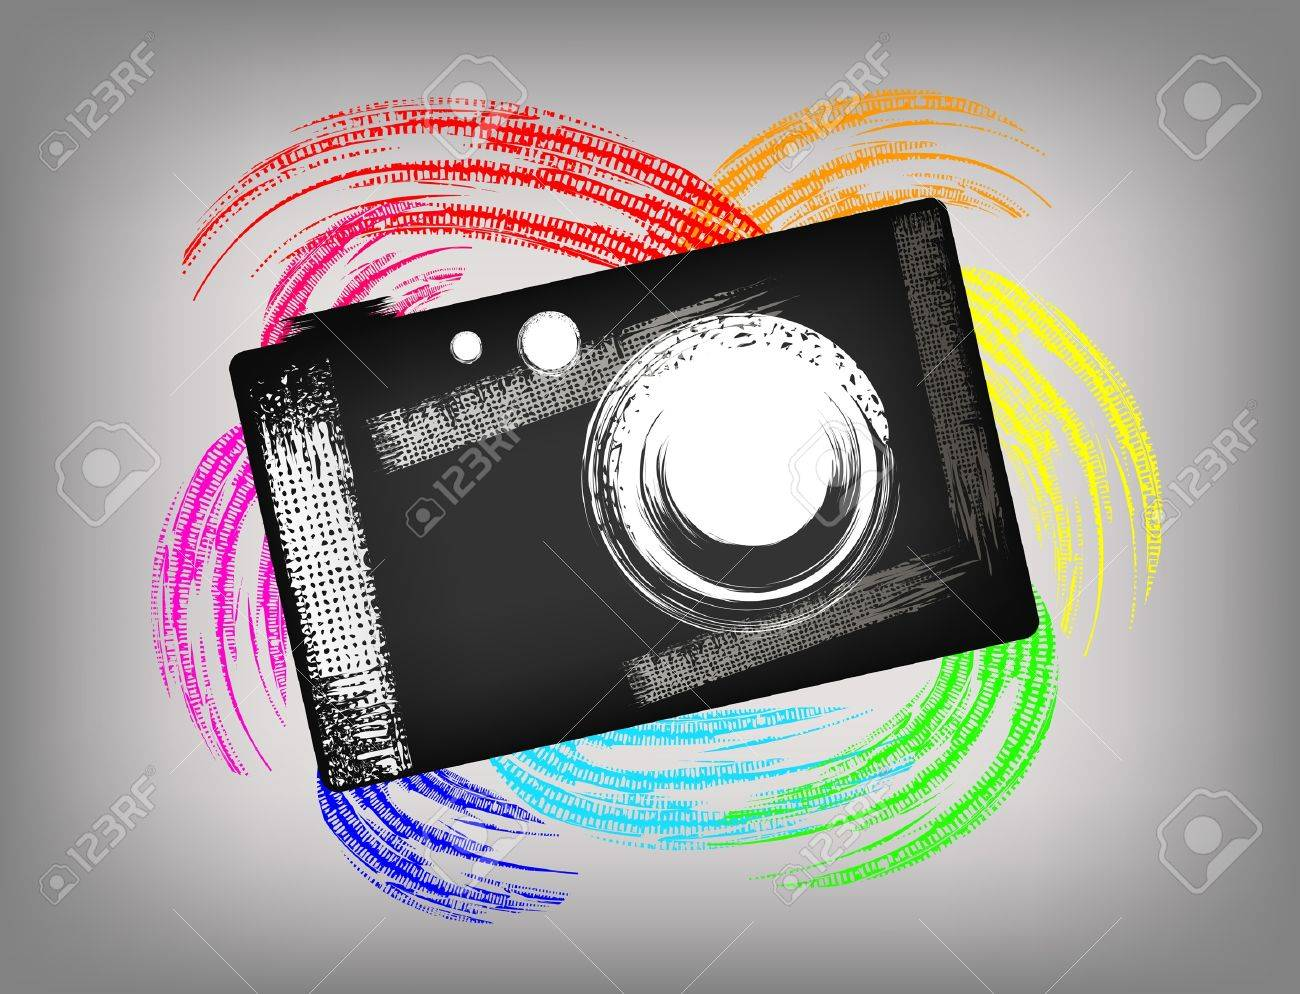 Grunge Camera Vector : The grunge camera on a beautiful background royalty free cliparts